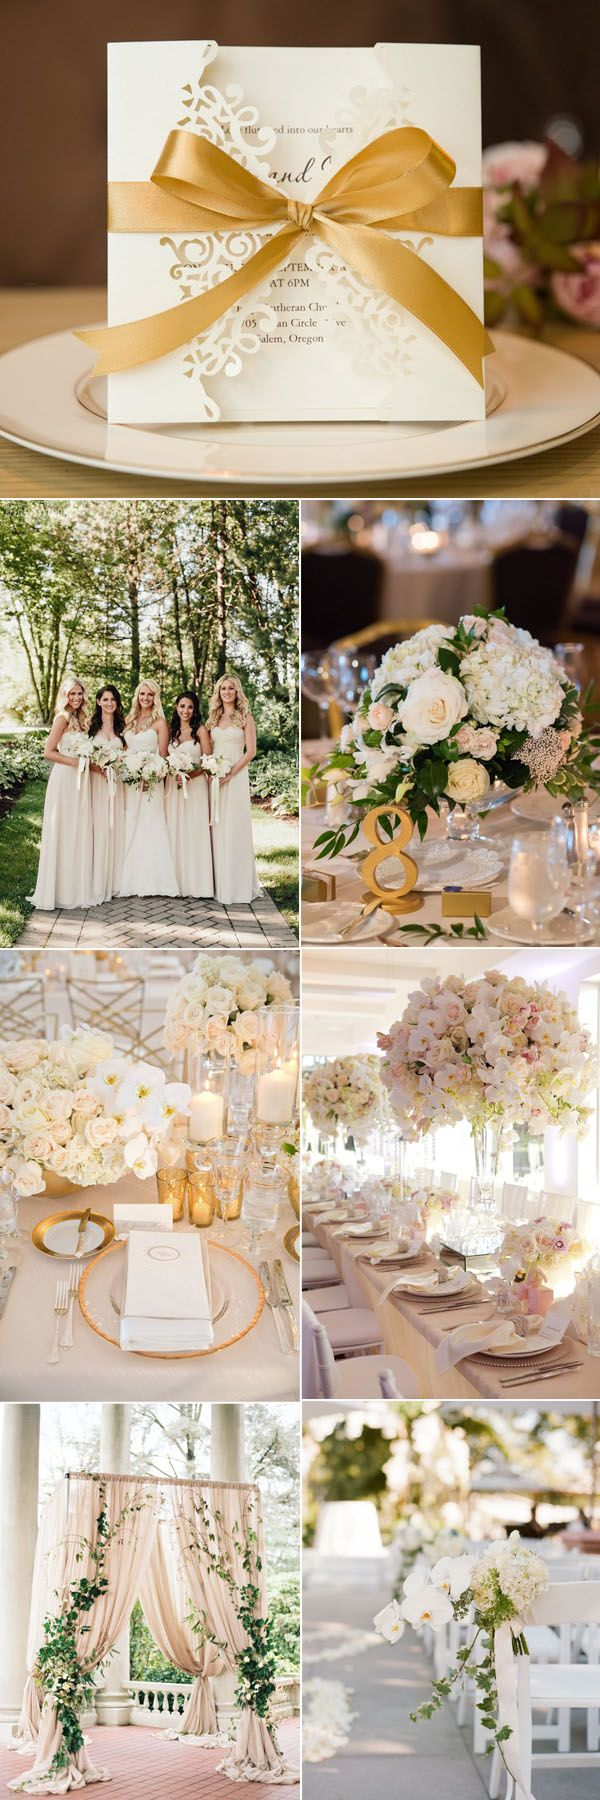 Elegant Ivory and Gold Wedding Inspiration and